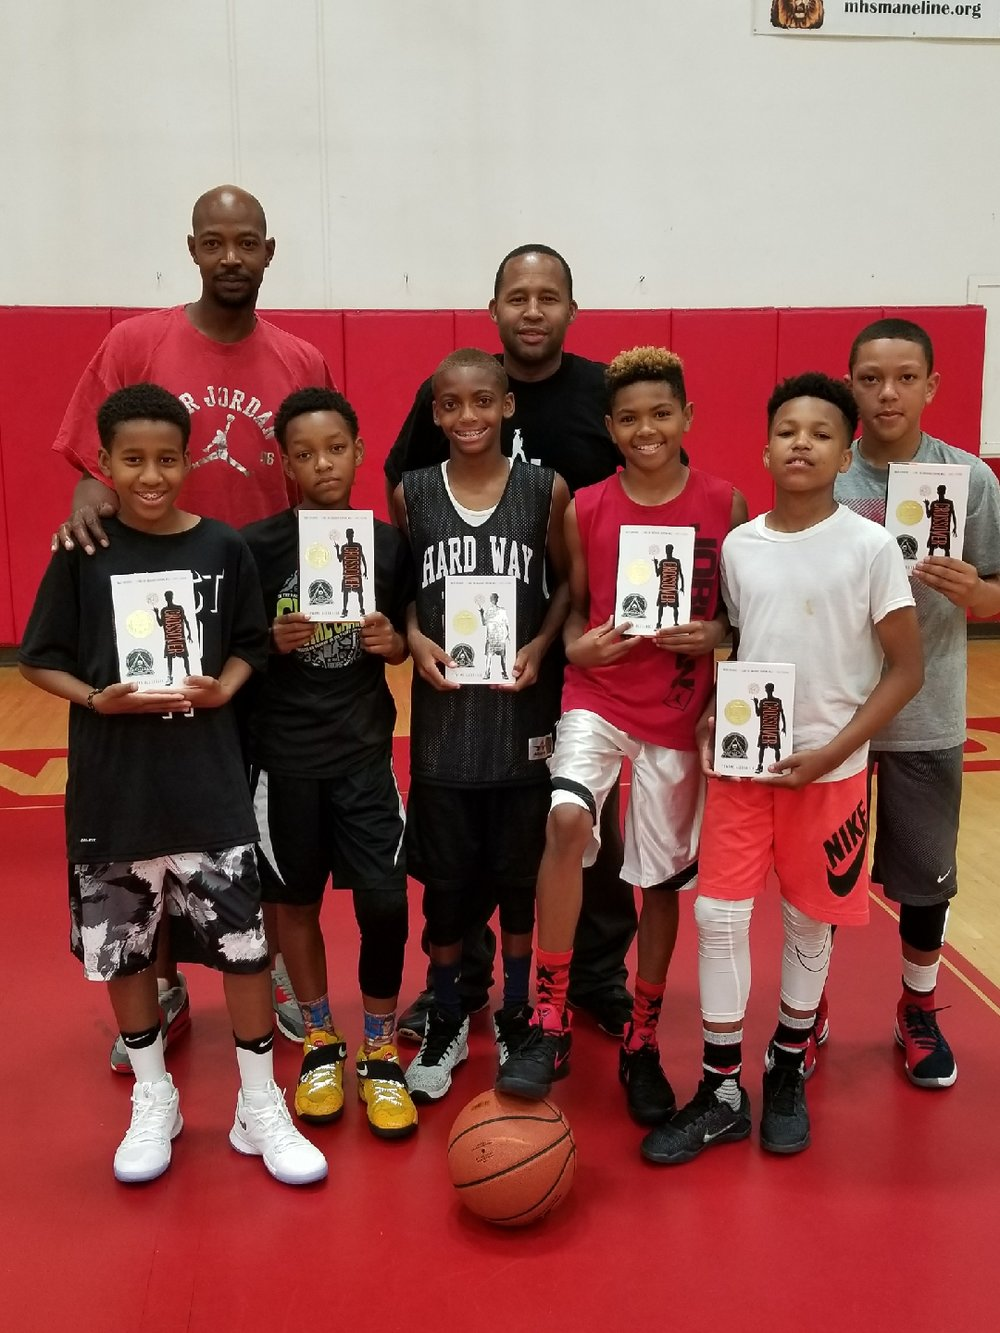 Literacy and education is the goal, utilizing sports is just one vehicle. Our 5th grade boys were required to read independently and answer written questions accordingly, making books and basketball work hand in hand.